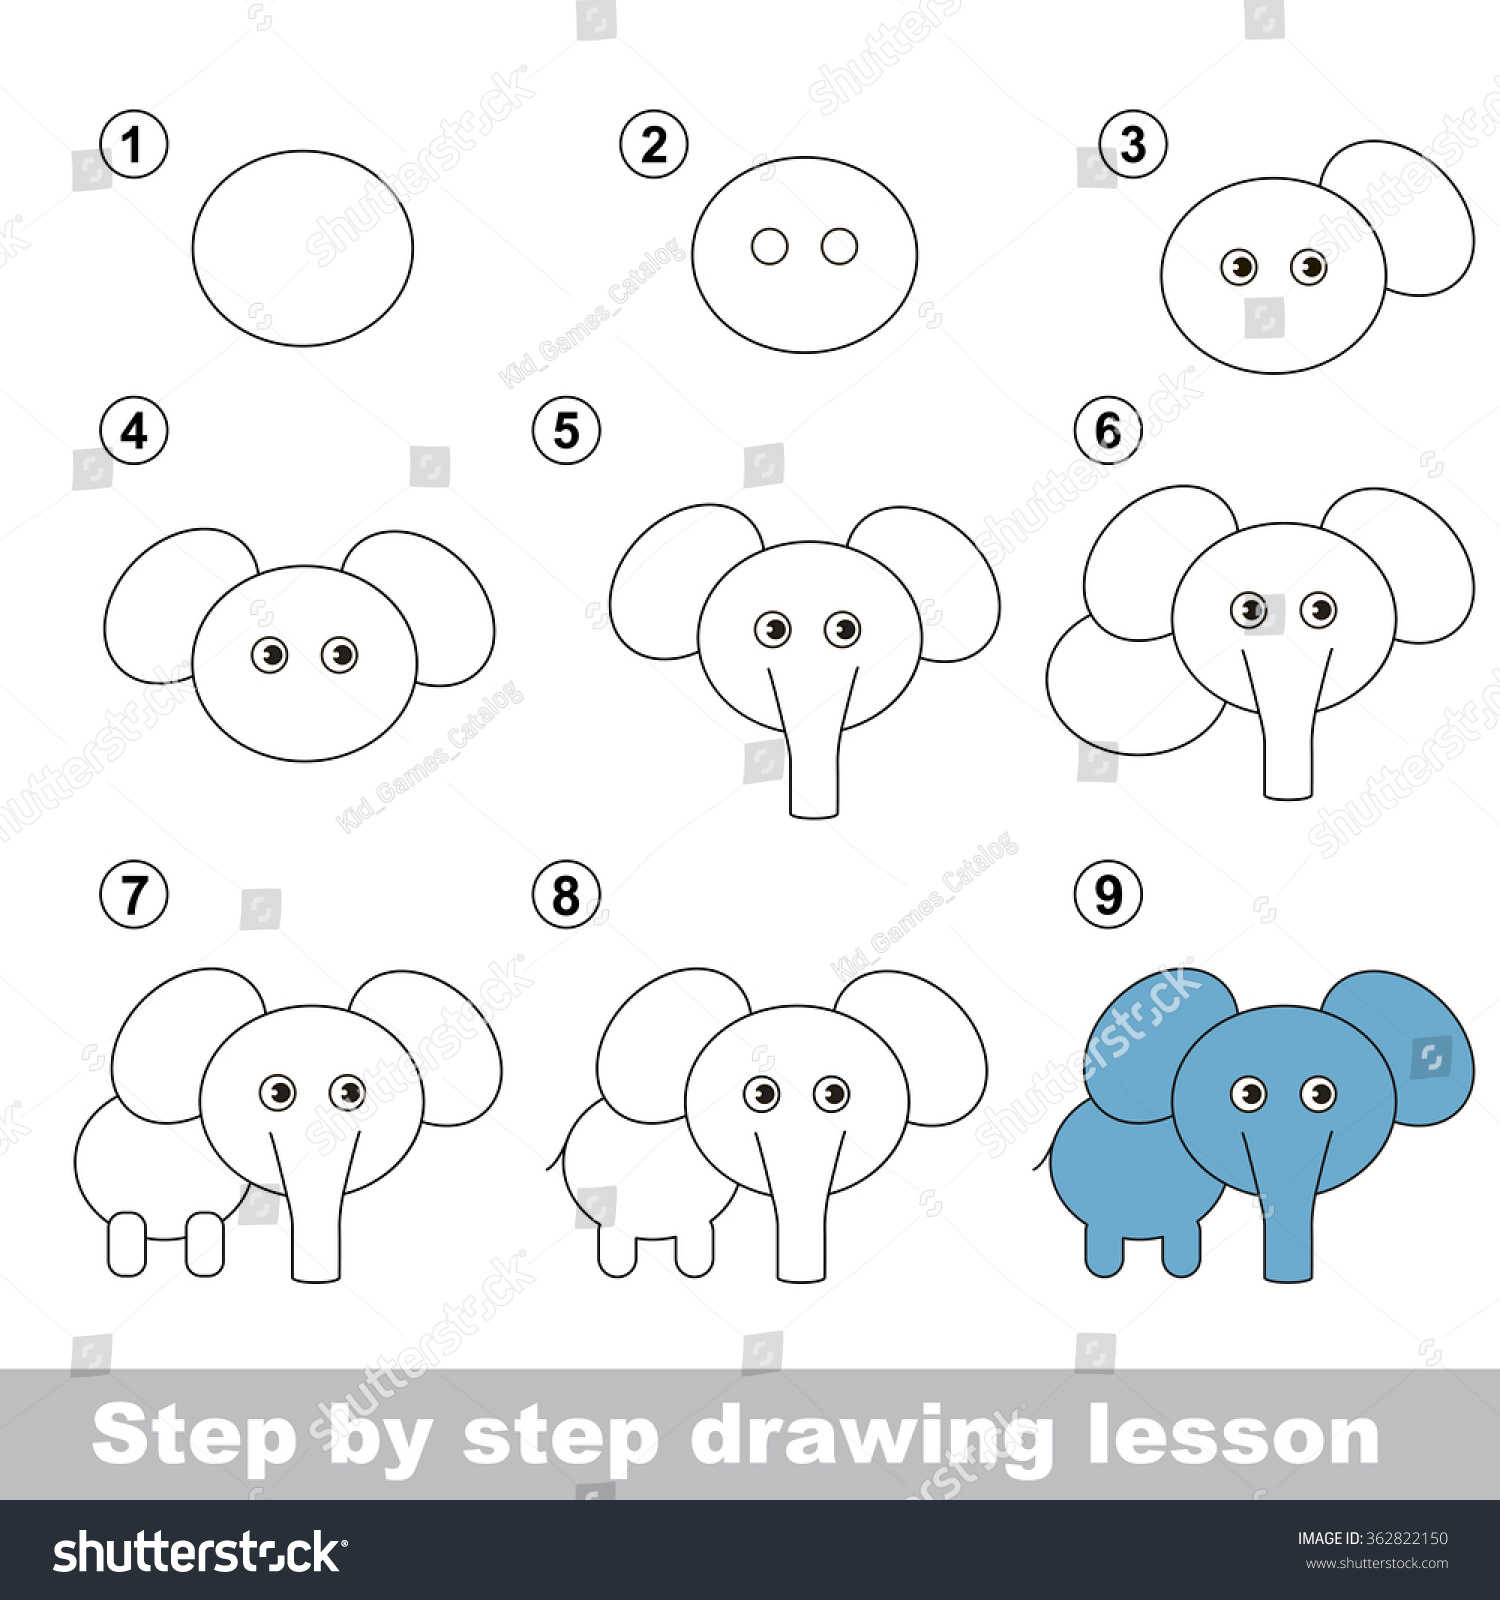 Elephant cartoon drawing steps for Step by step drawing websites